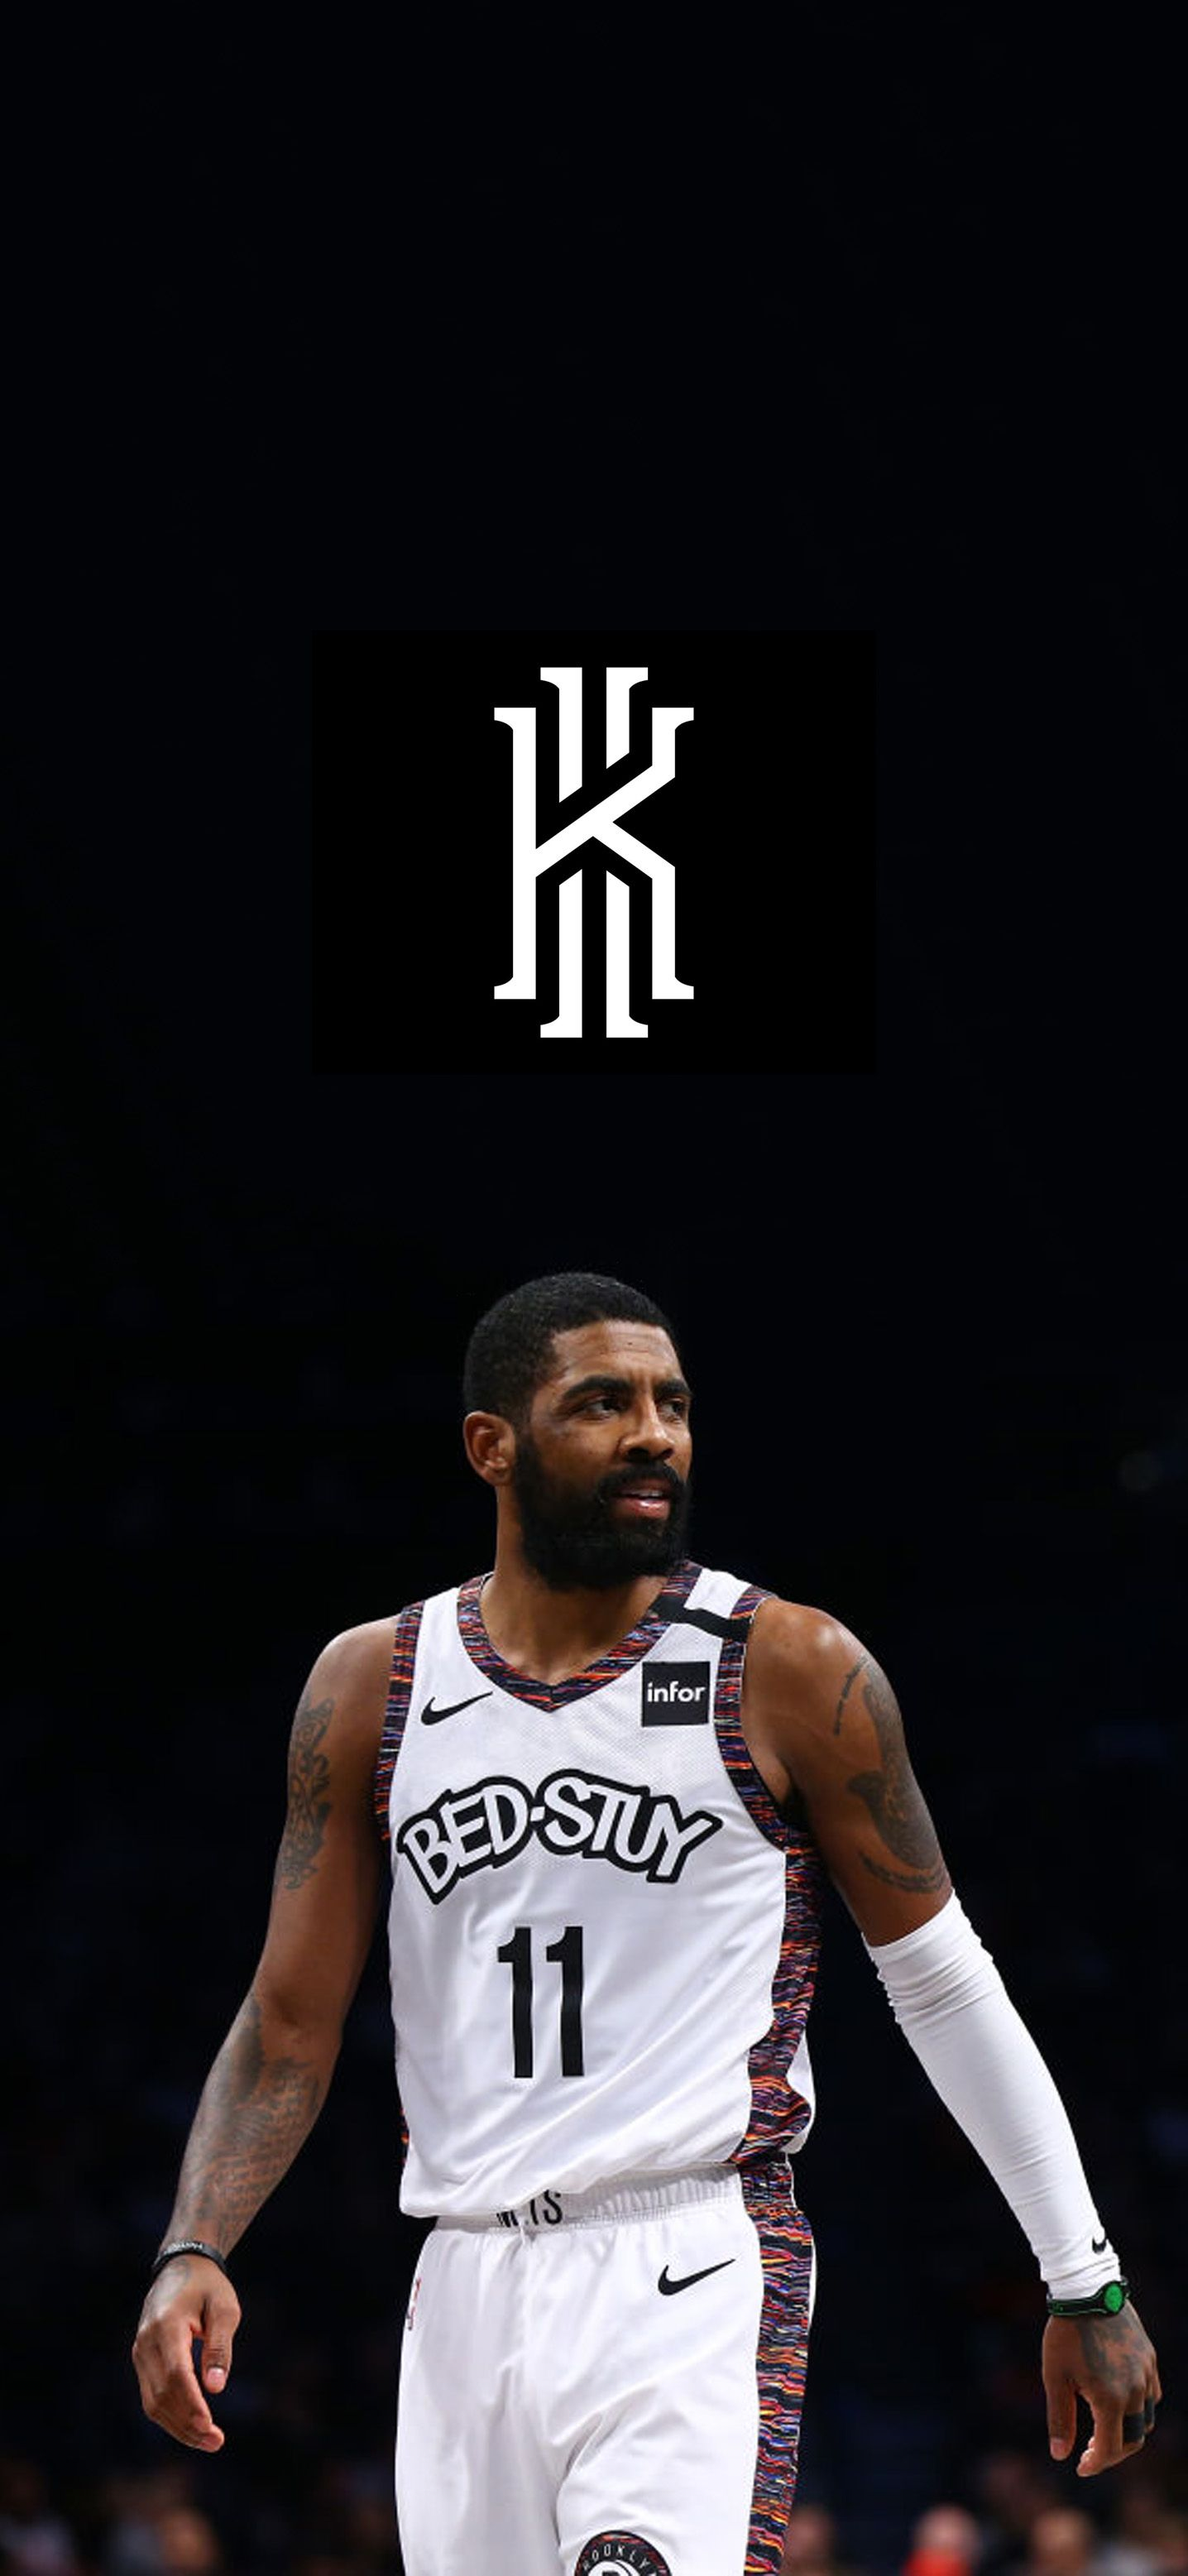 Kyrie Irving Wallpaper Irving wallpapers Kyrie irving logo 1436x3113